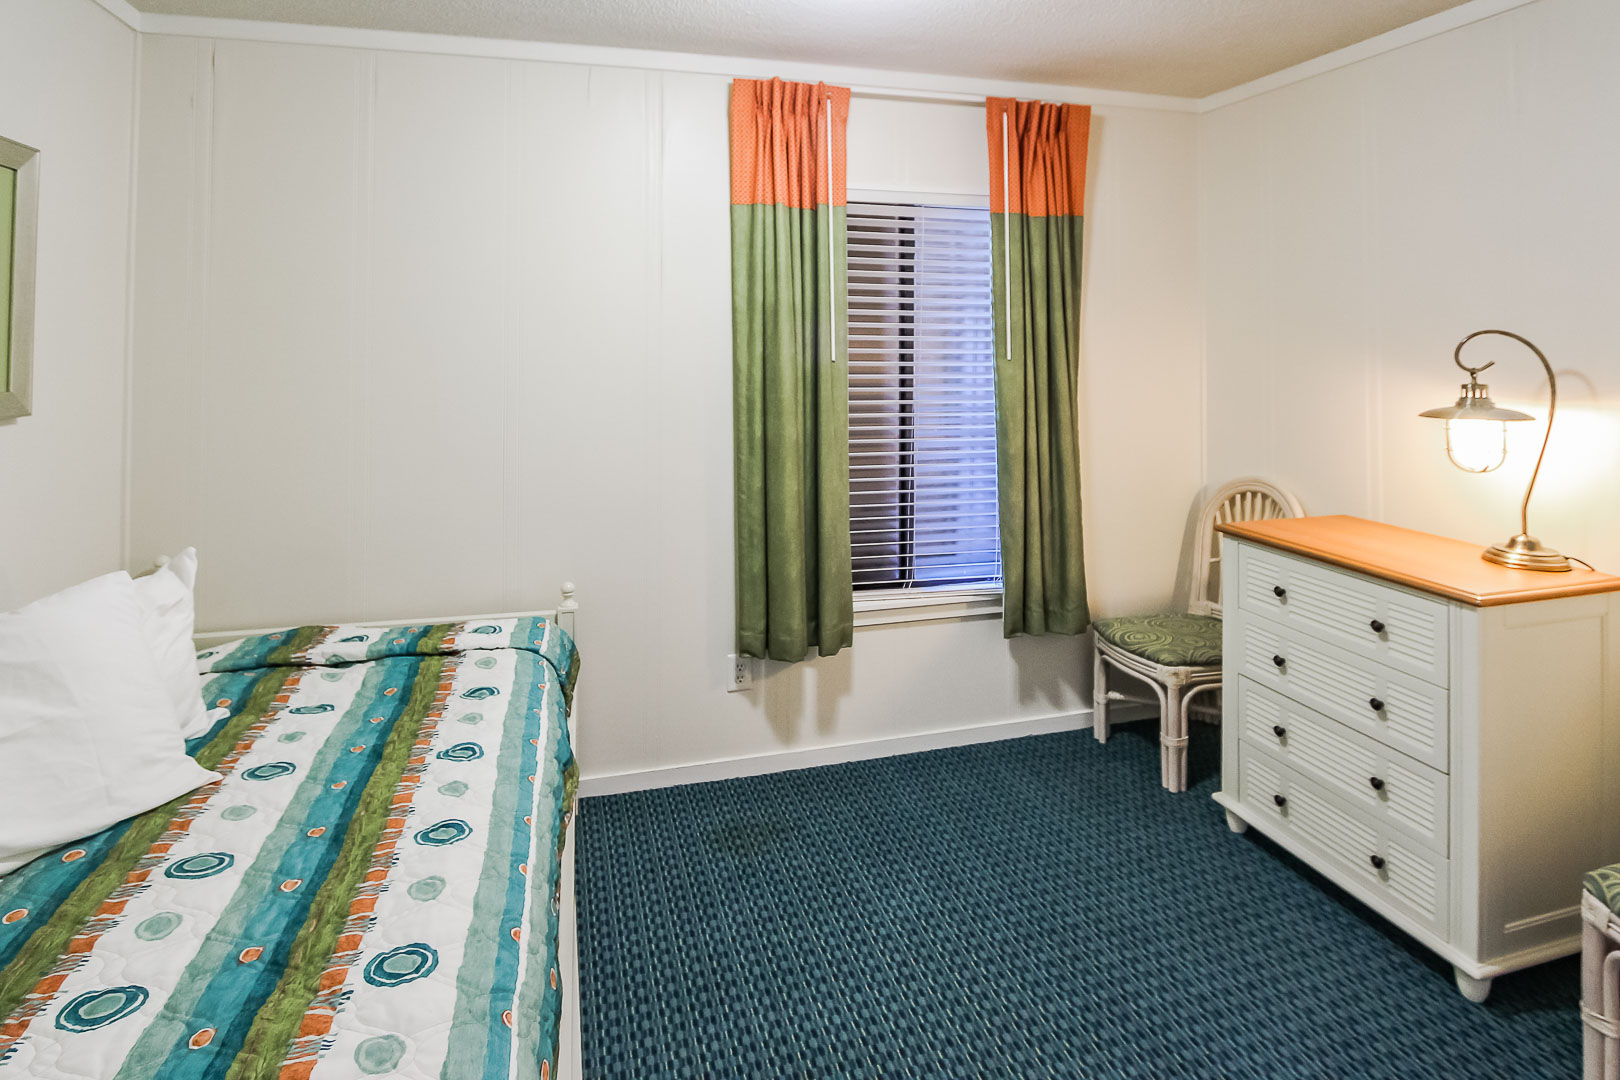 A traditional 1 and a half bedroom unit at VRI's A Place at the Beach III in North Carolina